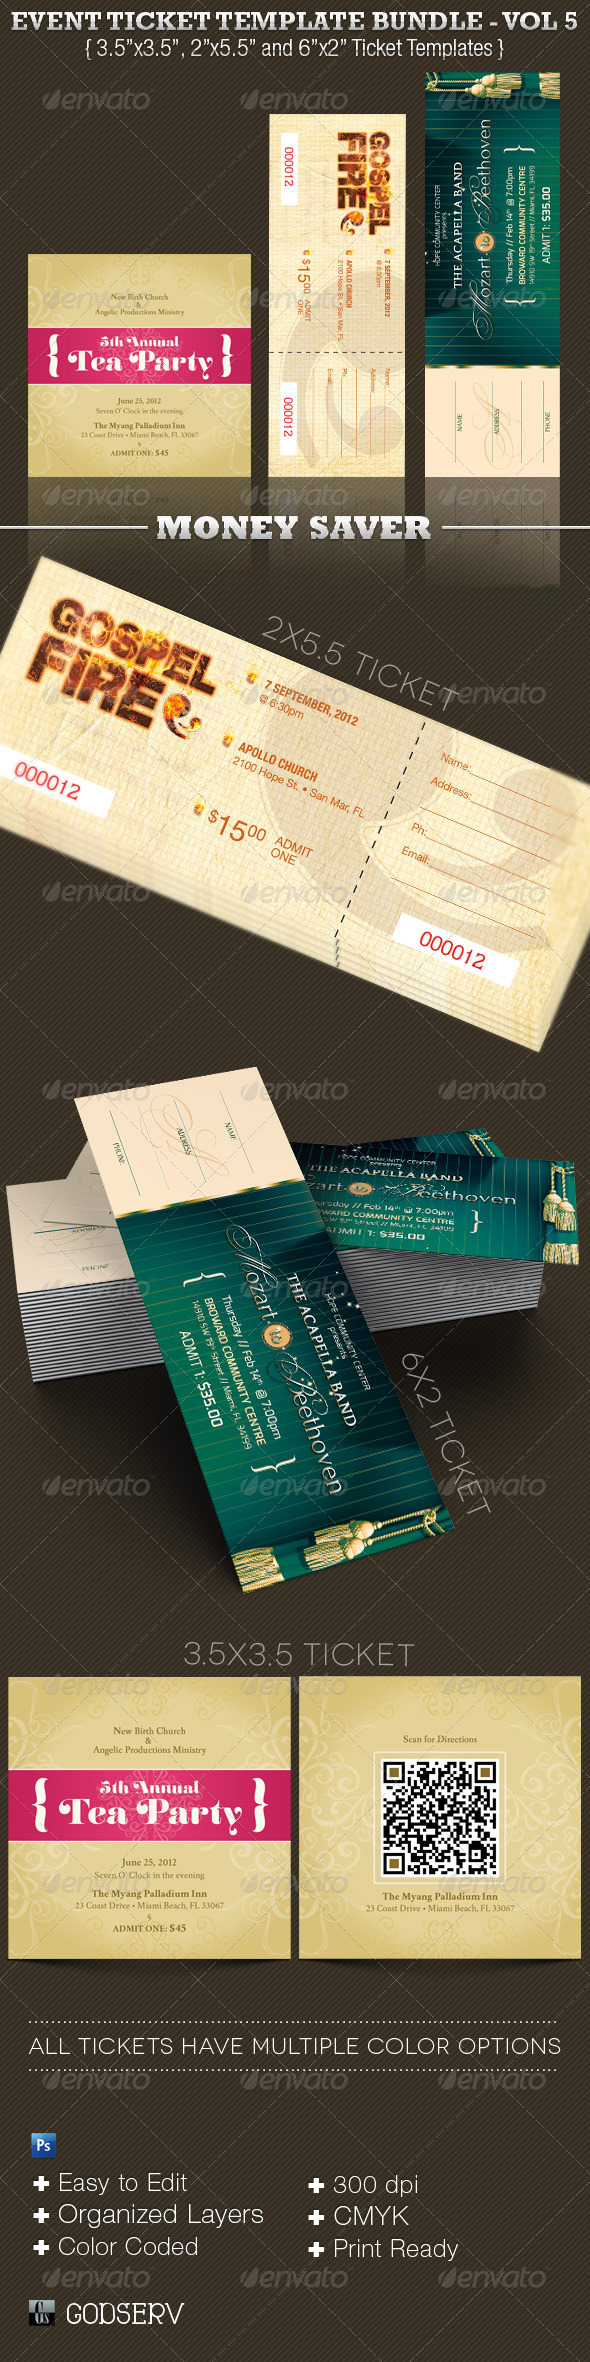 event ticket template bundle vol 5 graphicriver. Black Bedroom Furniture Sets. Home Design Ideas